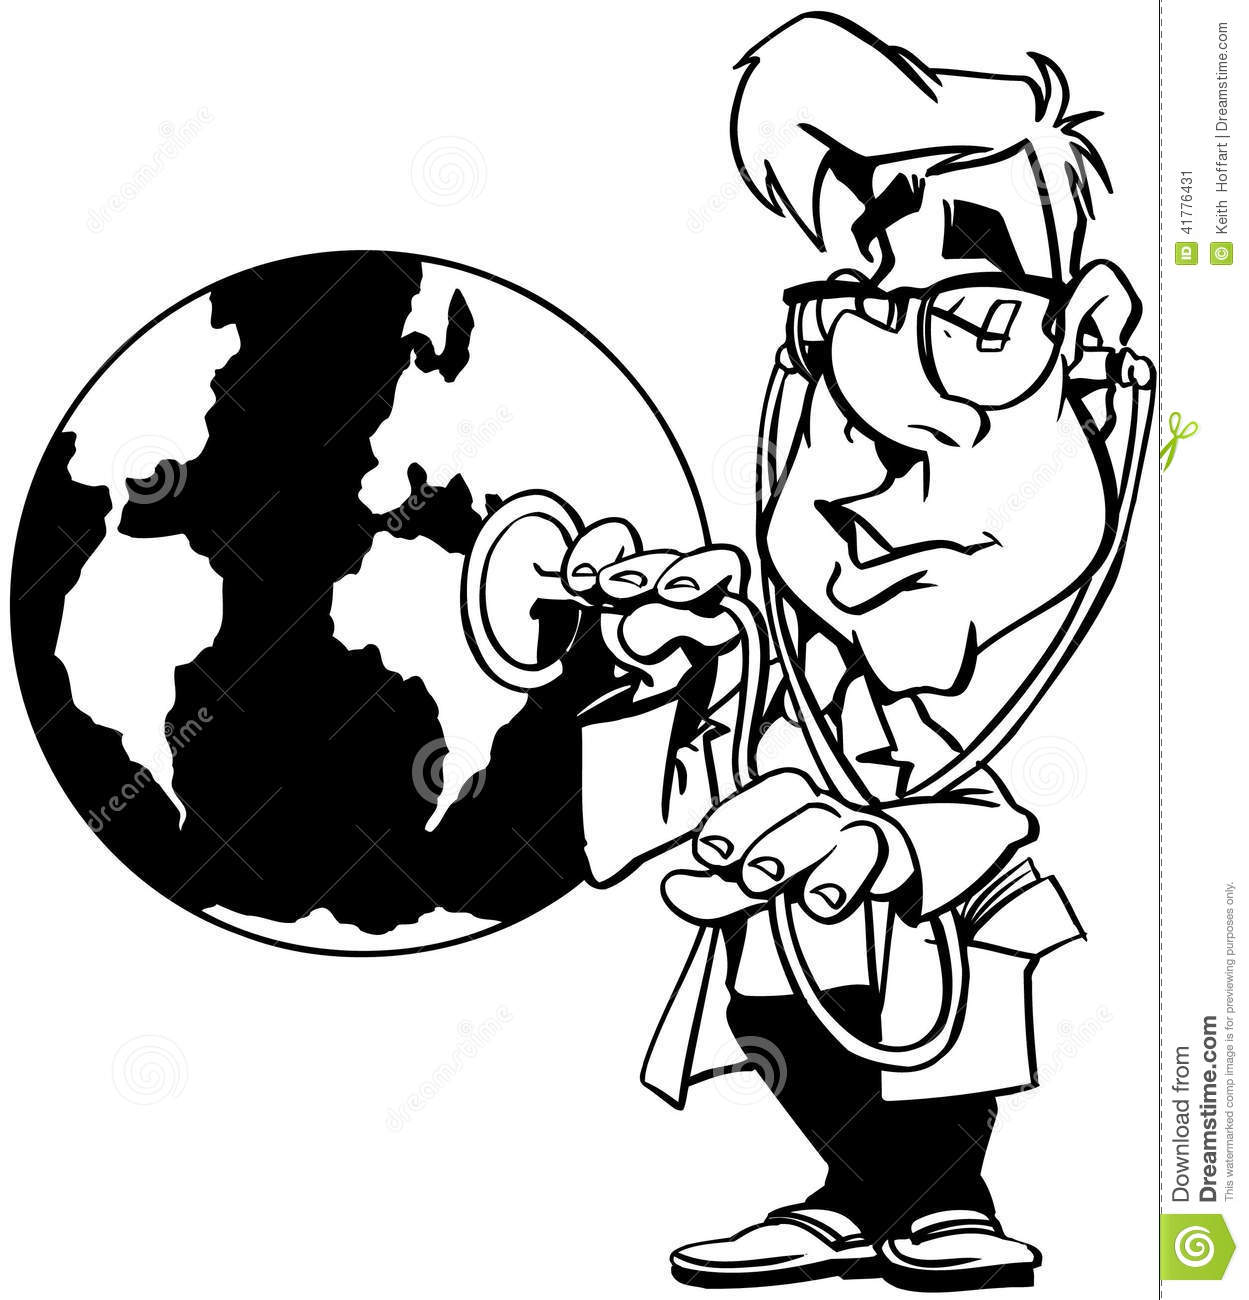 Global Warming Earth Cartoon Vector Clipart Stock